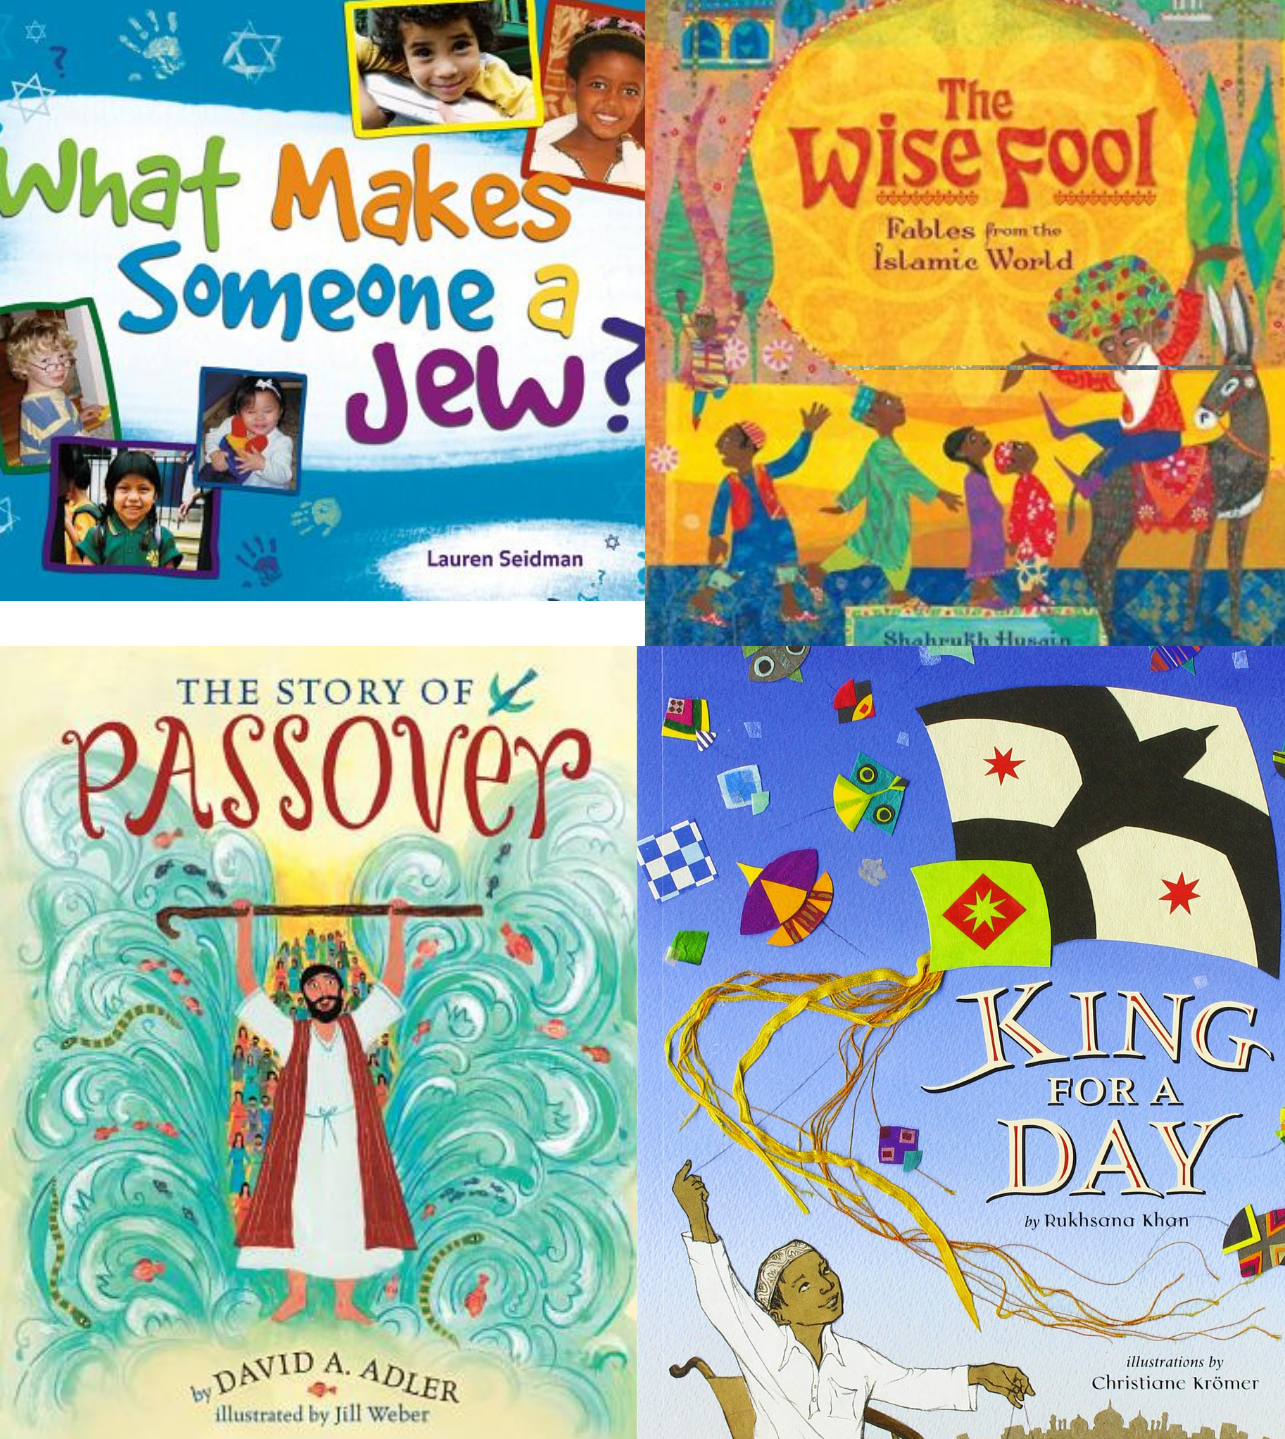 """Image of four book covers left to right: """"What Makes Someone a Jew?"""" by Lauren Seidman, """"The Wise Fool"""" by Shahrukh Husain, """"The Story of Passover"""" by David A. Adler, """"King for a Day"""" by Rukhsana Khan"""